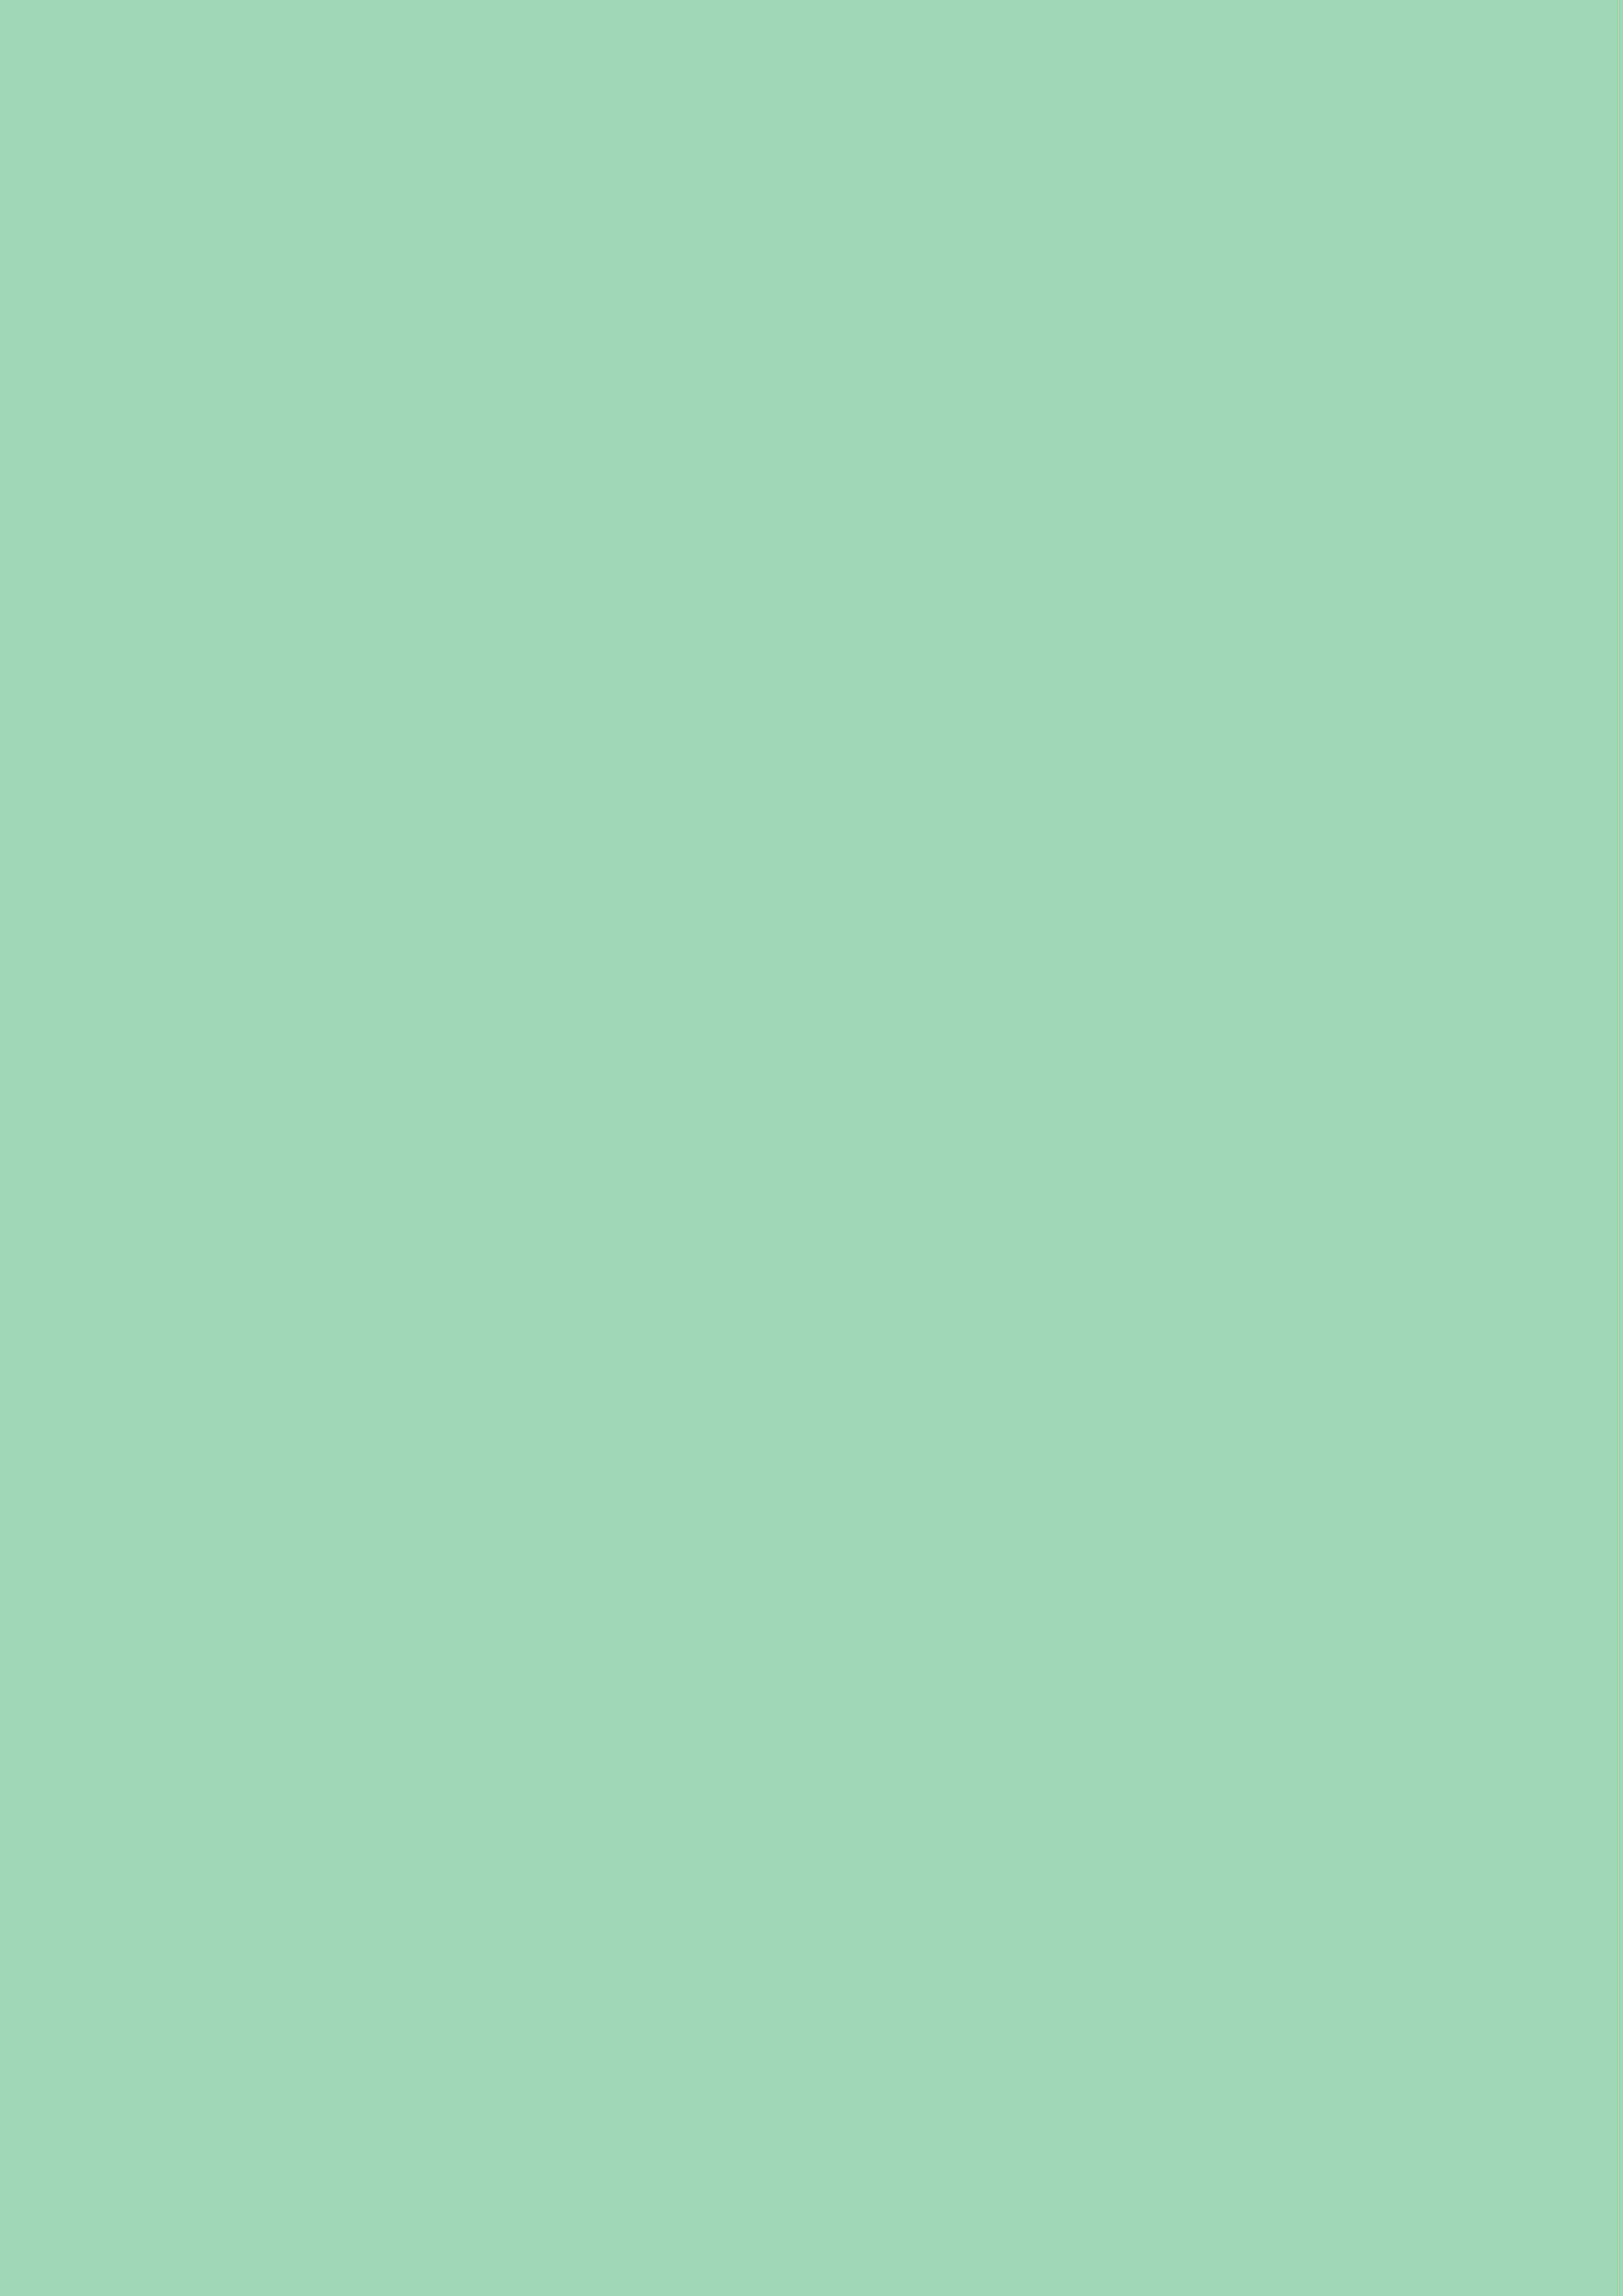 2480x3508 Turquoise Green Solid Color Background